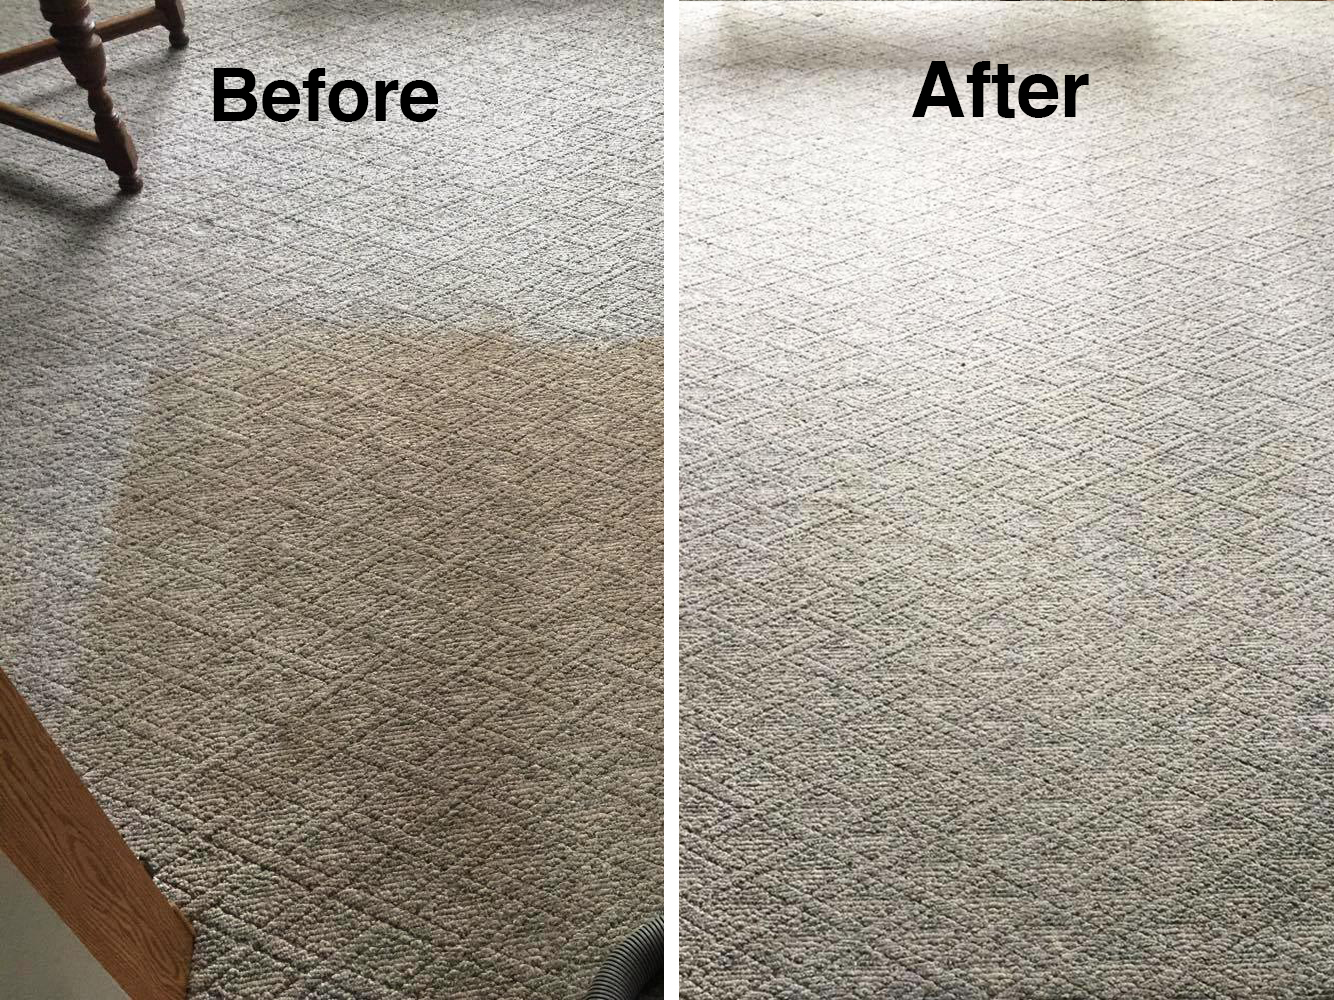 jakes carpet and upholstery cleaning results 4